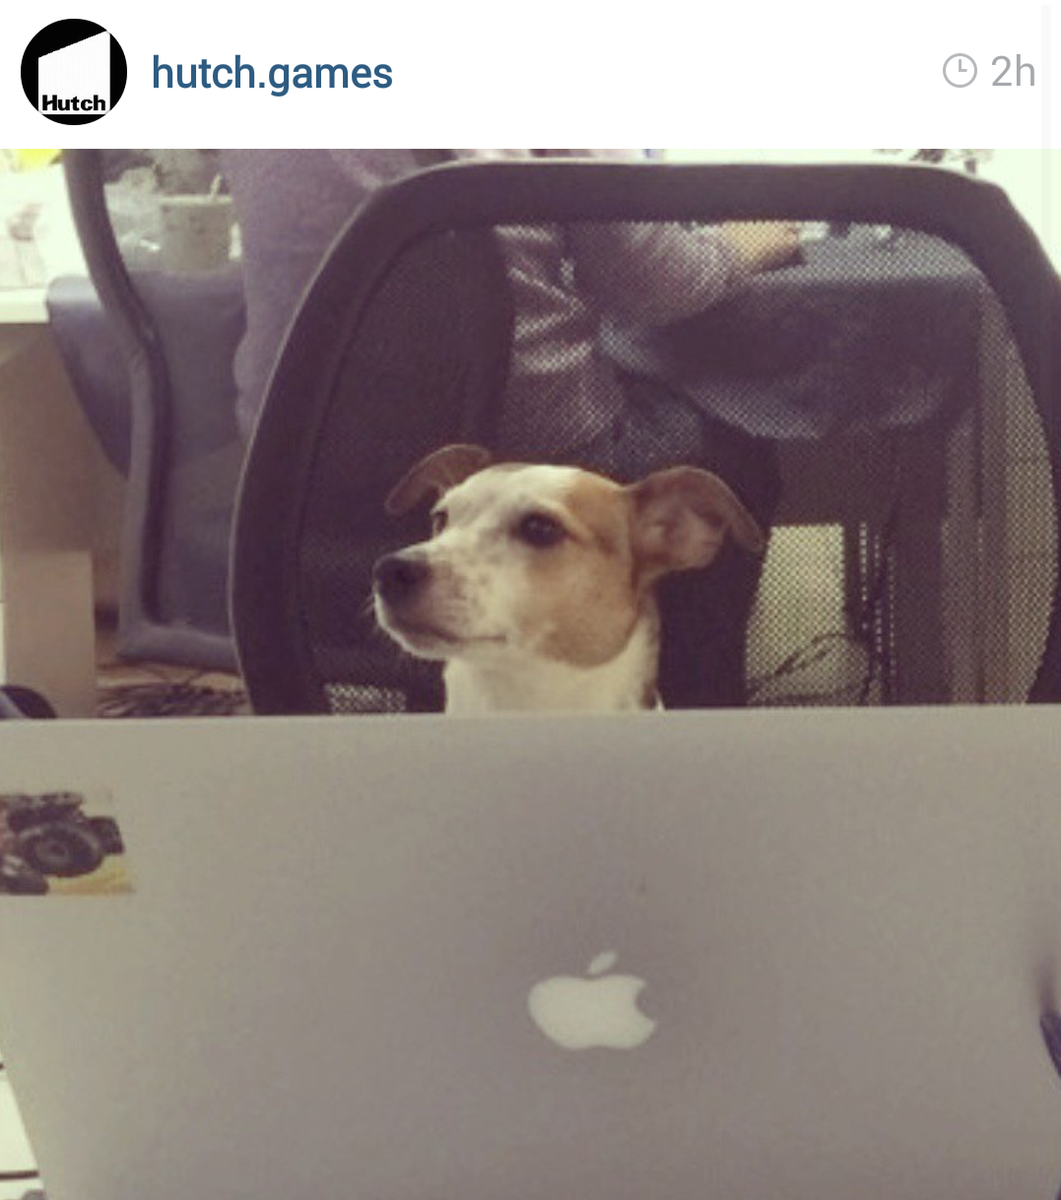 Hutch On Twitter Hutch Now On Instagram Follow Hutch Games To Get